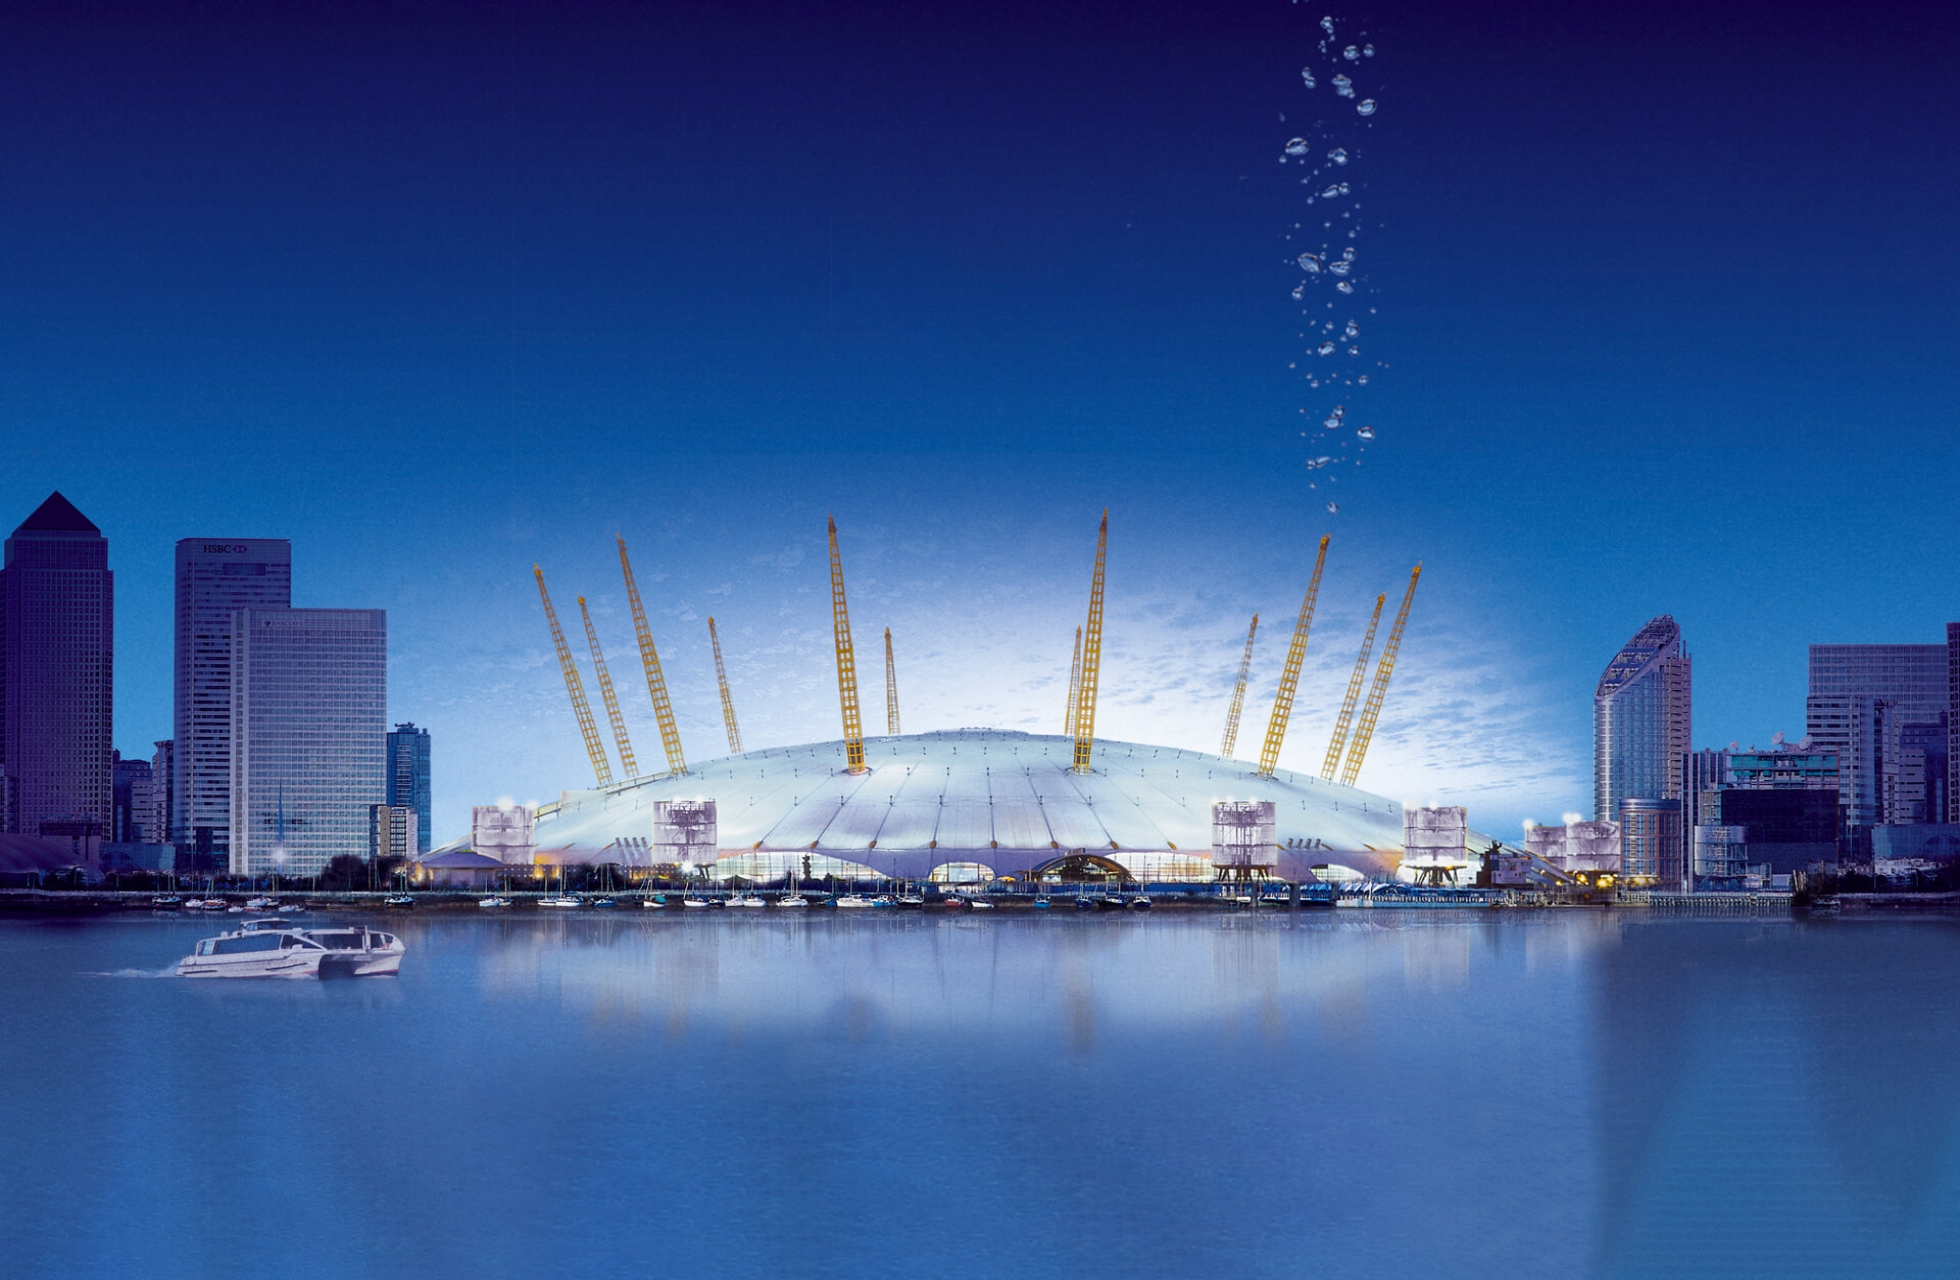 Events at The O2